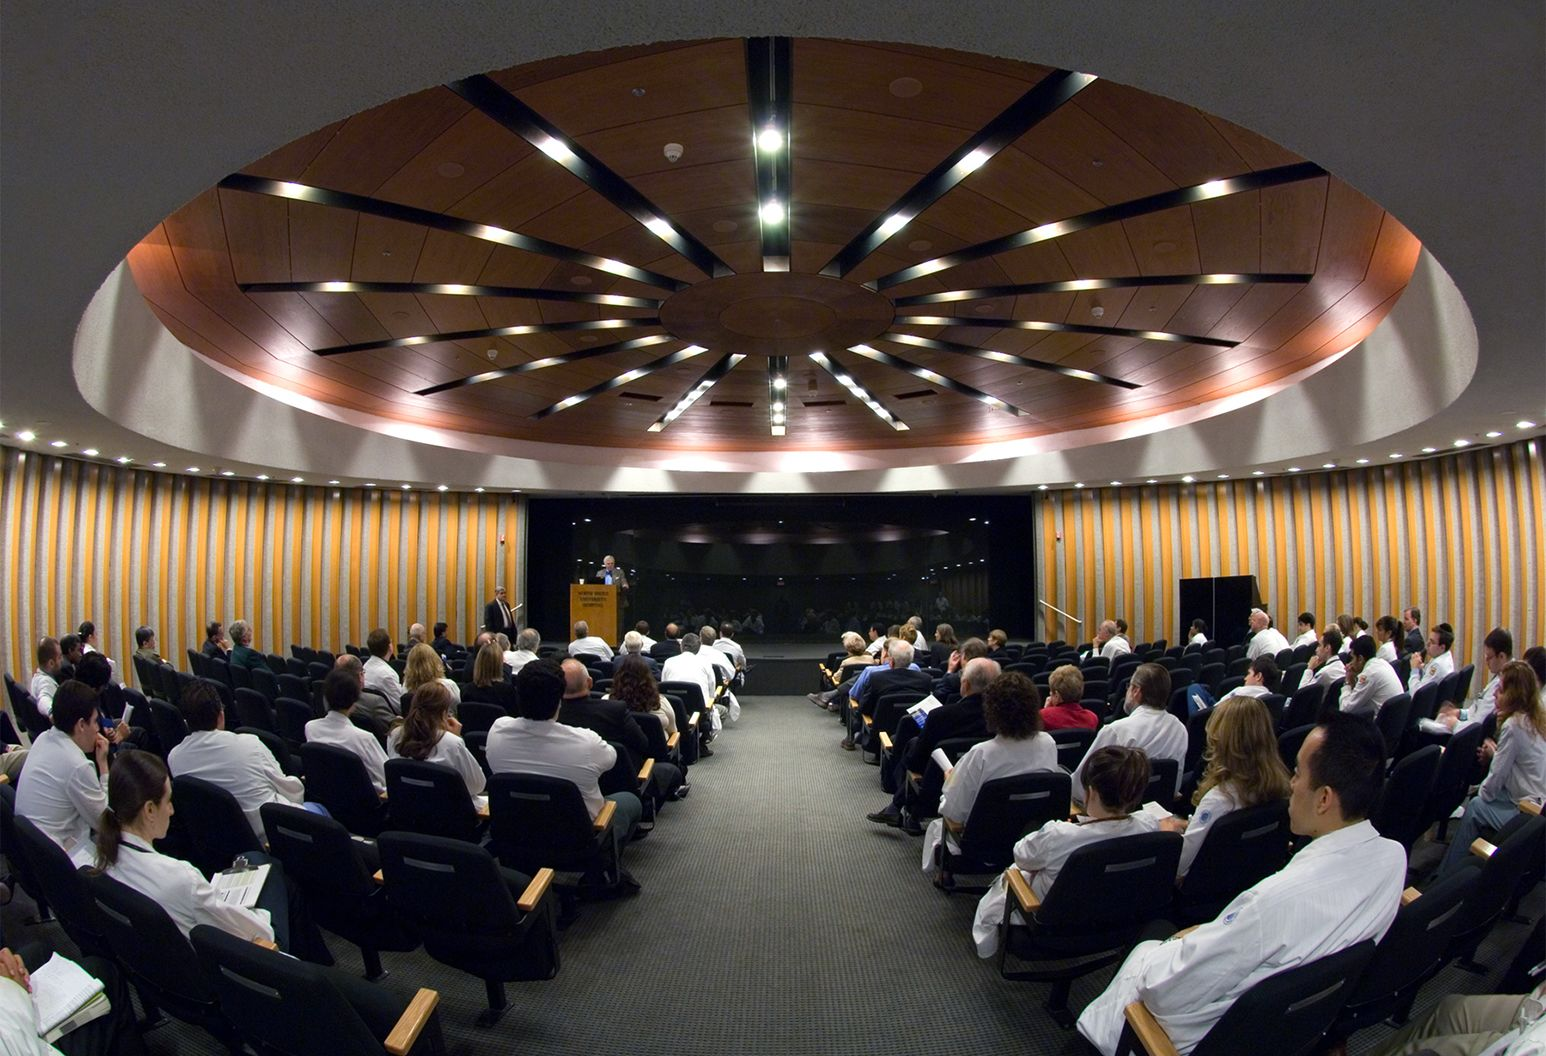 Panorama image of an auditorium facing the stage